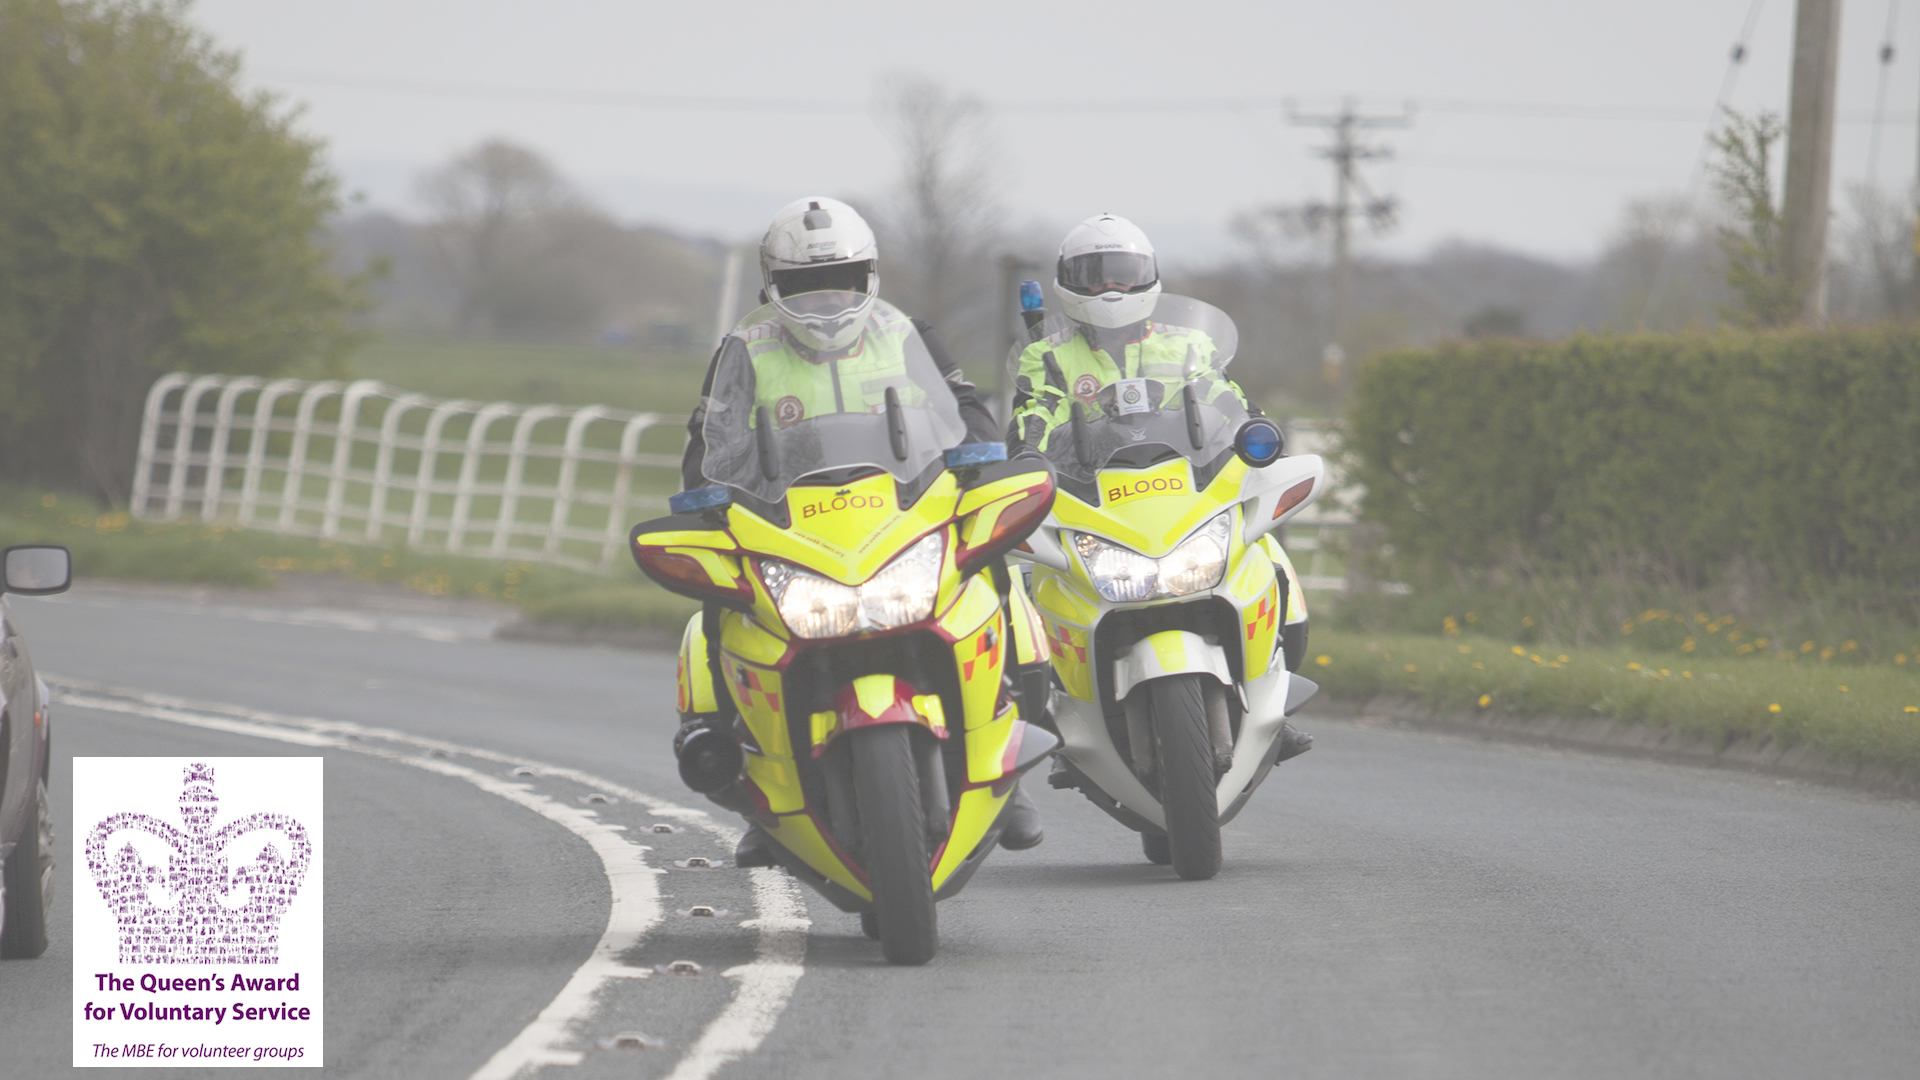 Two Blood Bikers riding down a road